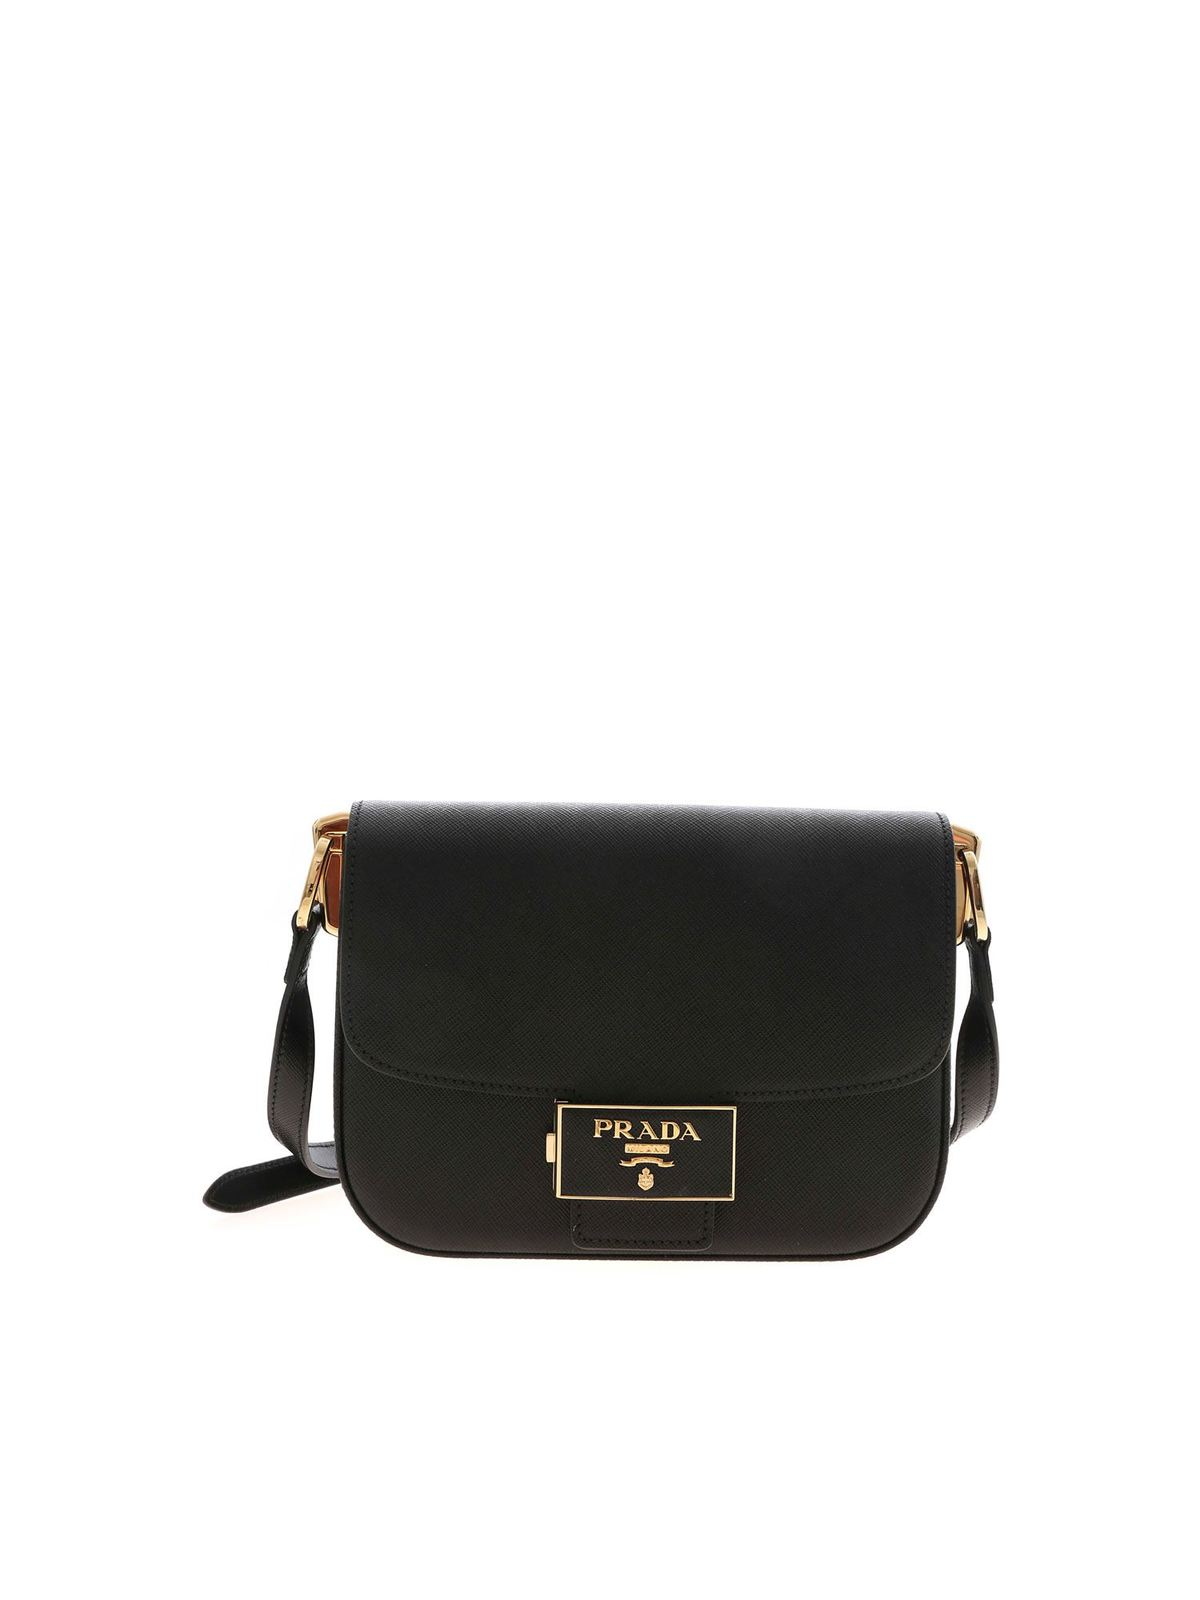 Prada SAFFIANO SHOULDER BAG IN BLACK